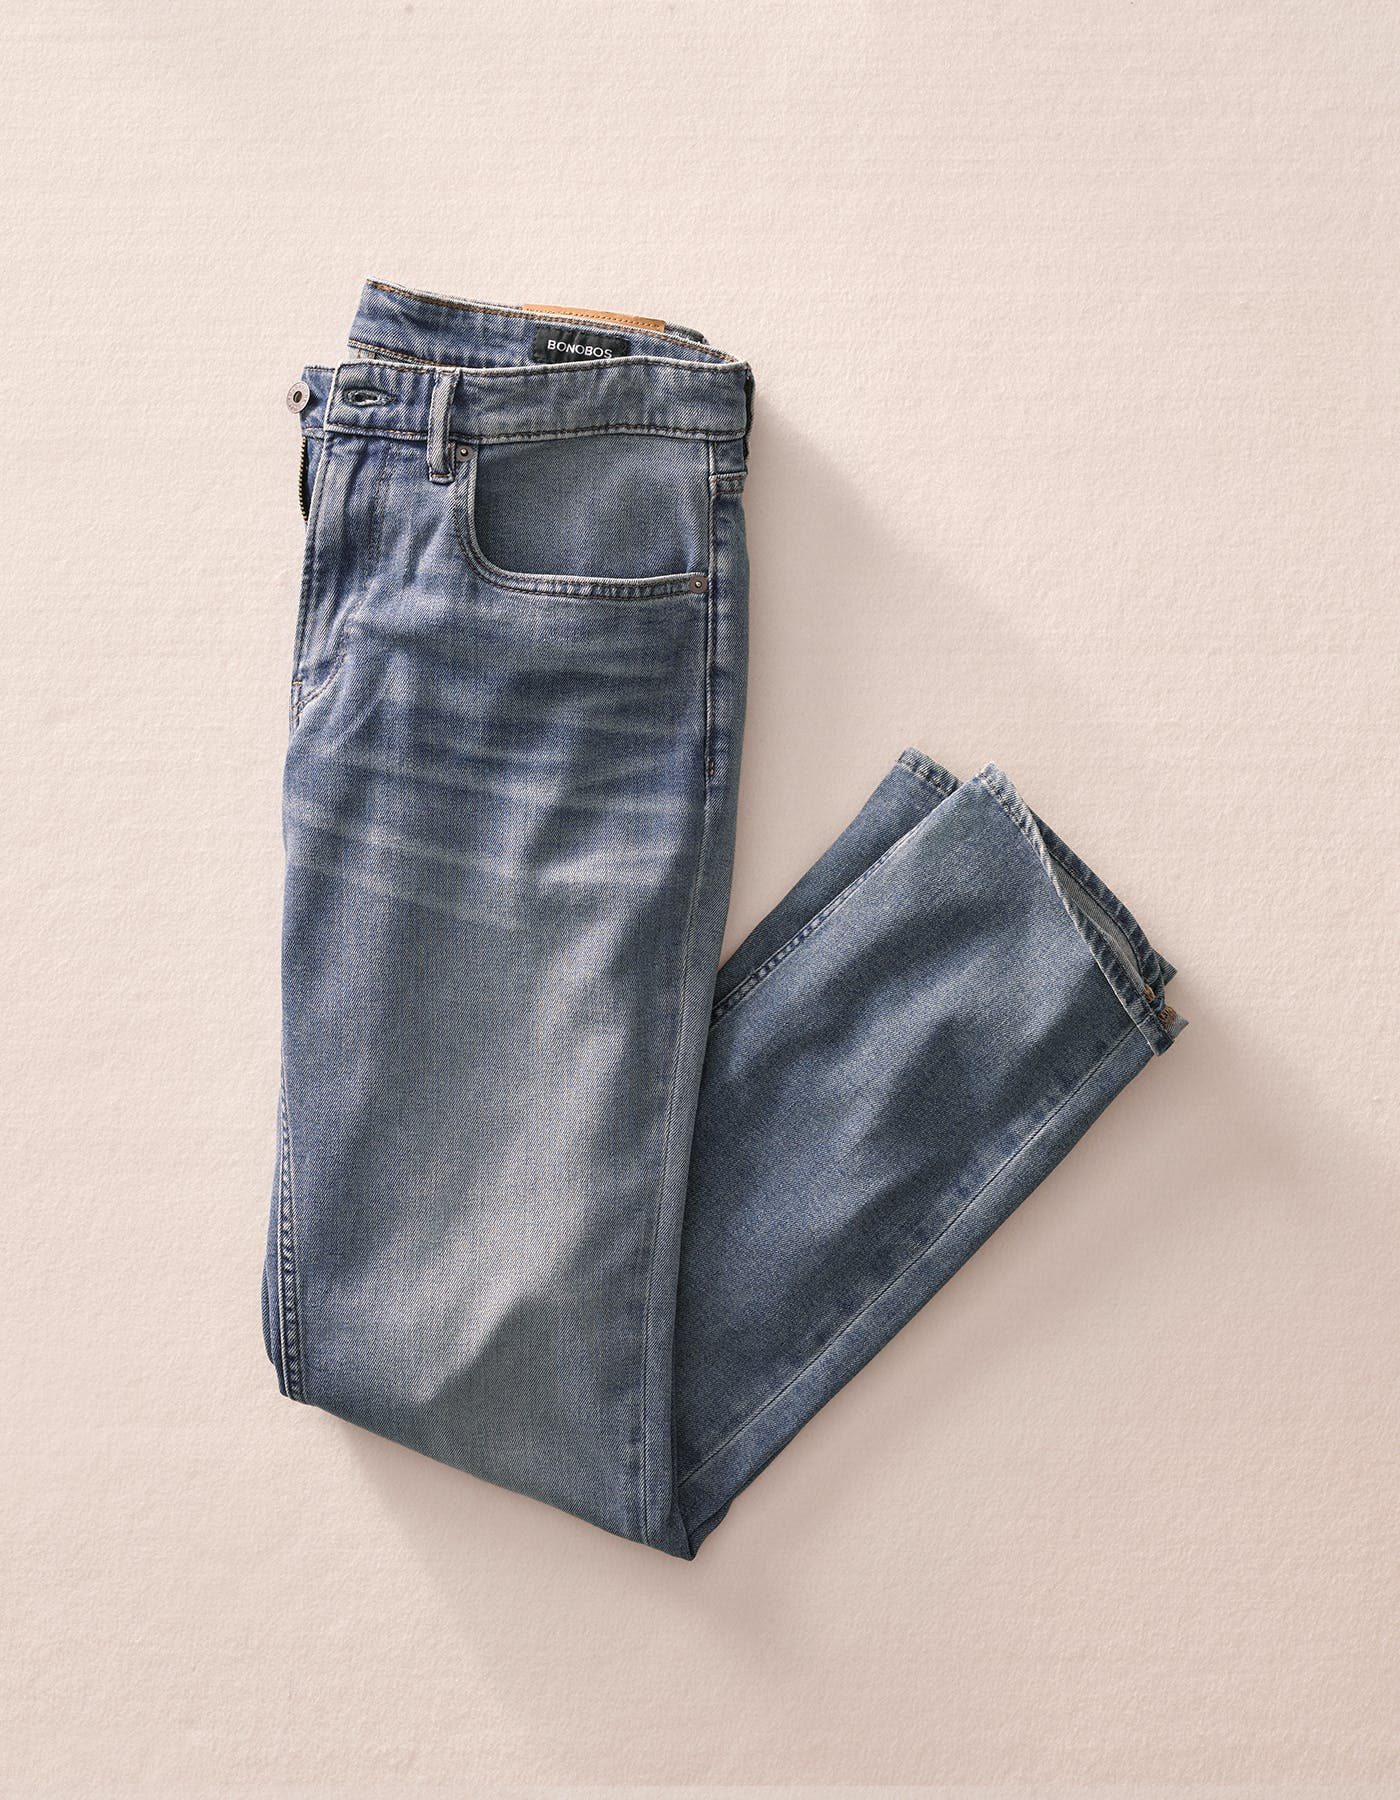 Image of a Grey Jean